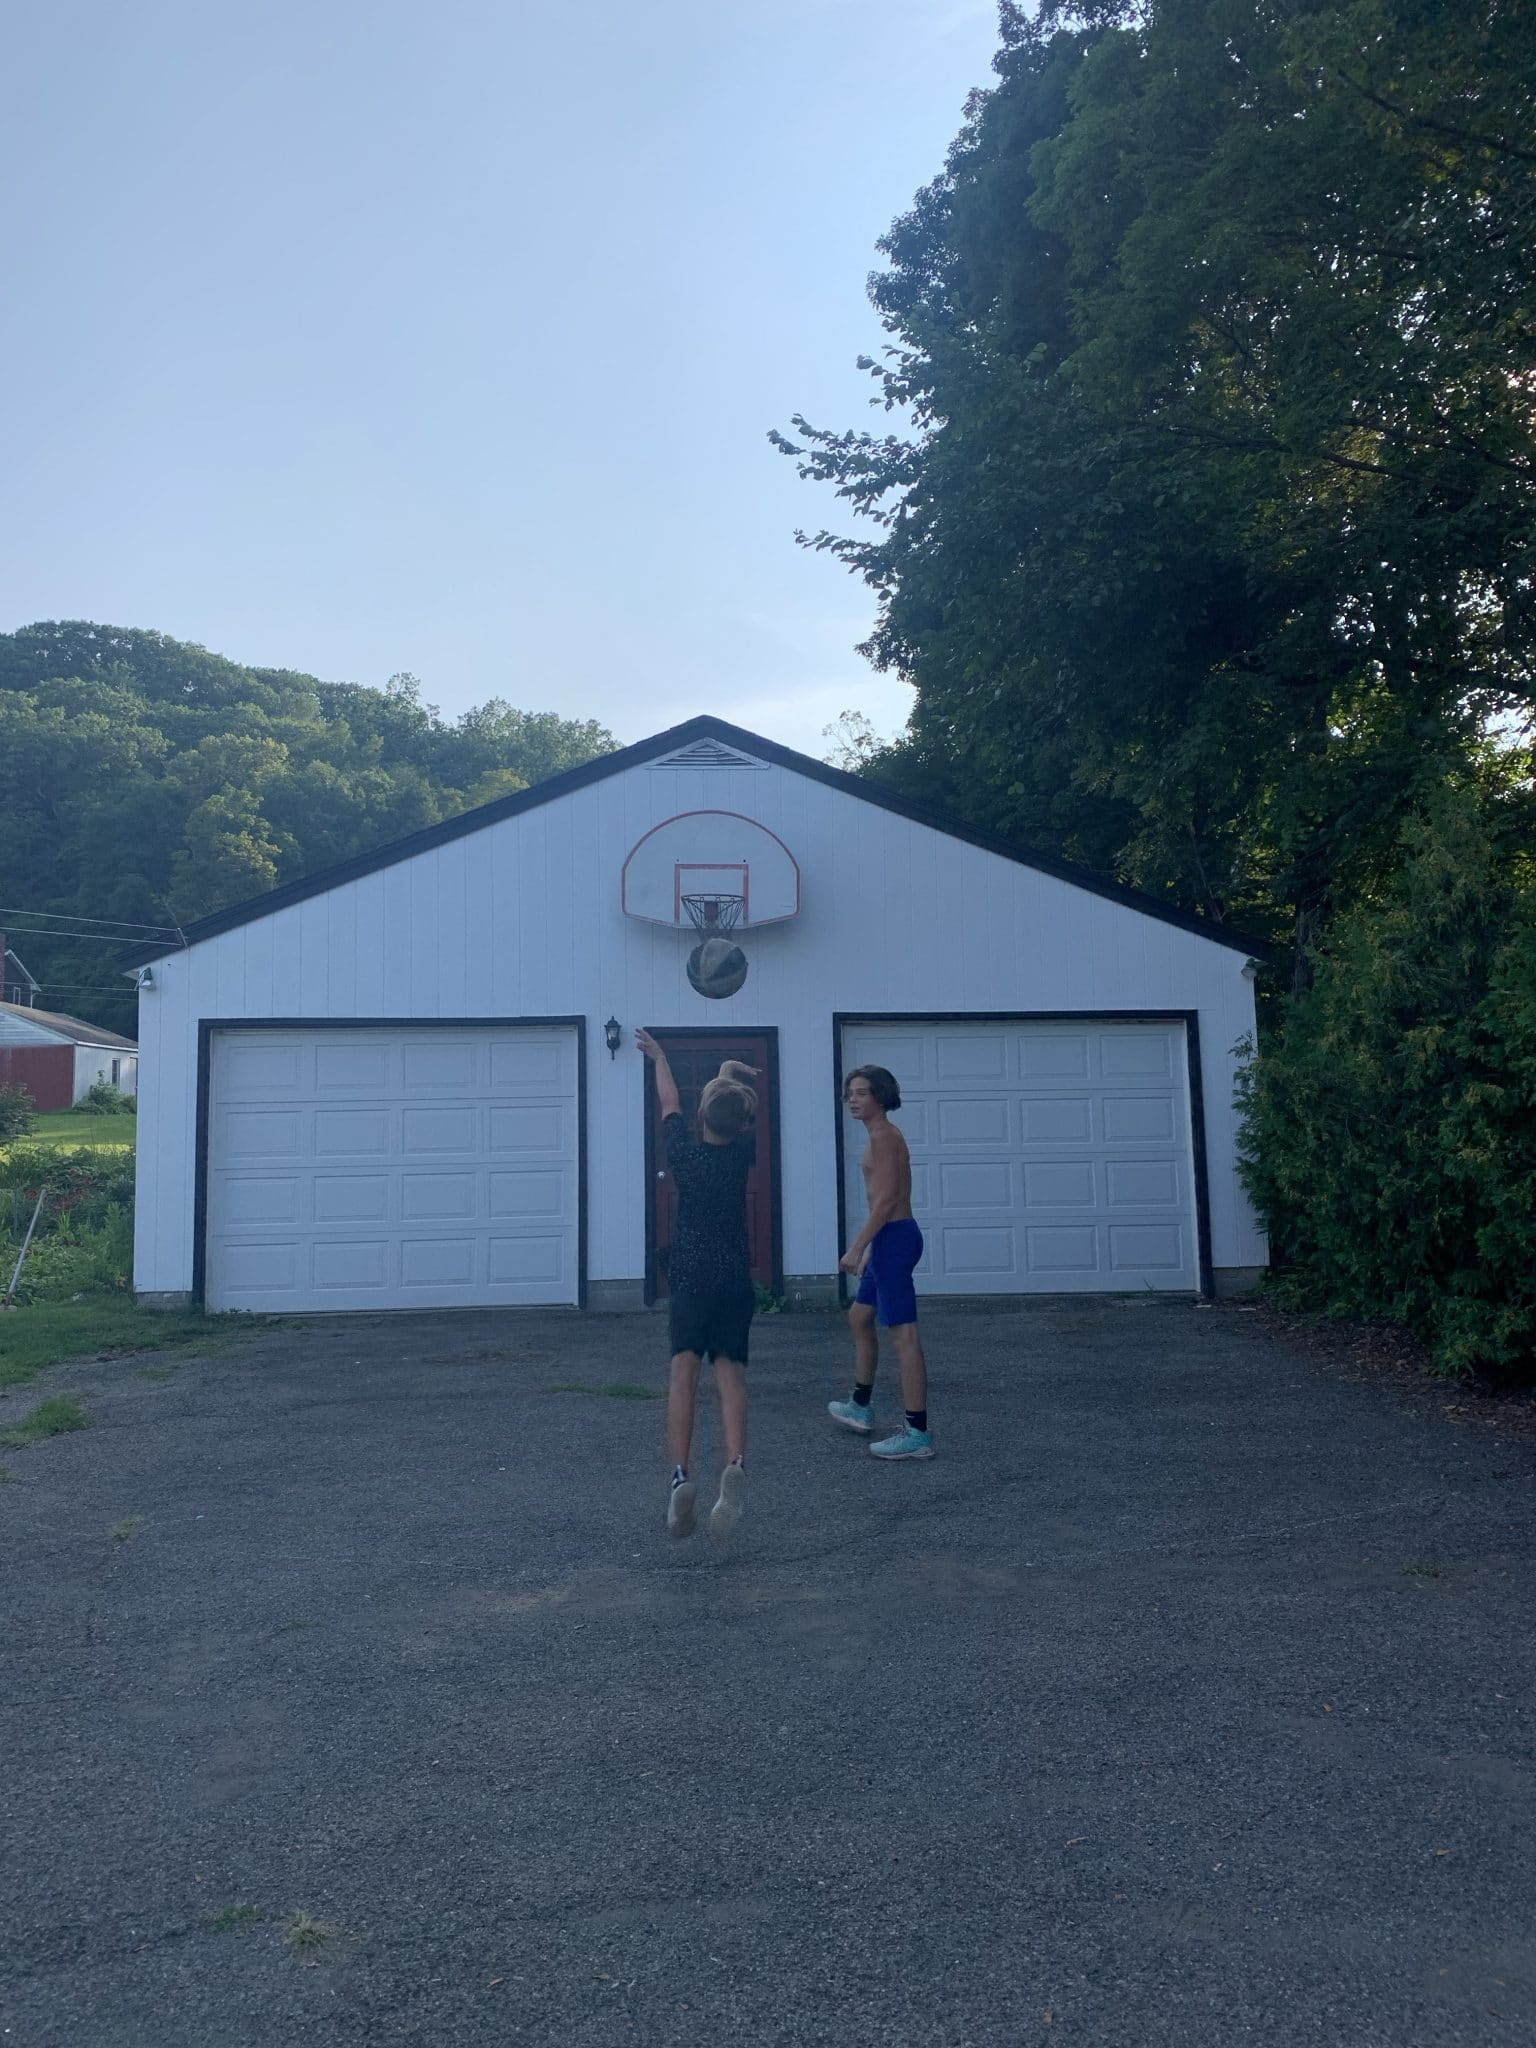 Upstate New York Summer Trip, stilettos and diapers